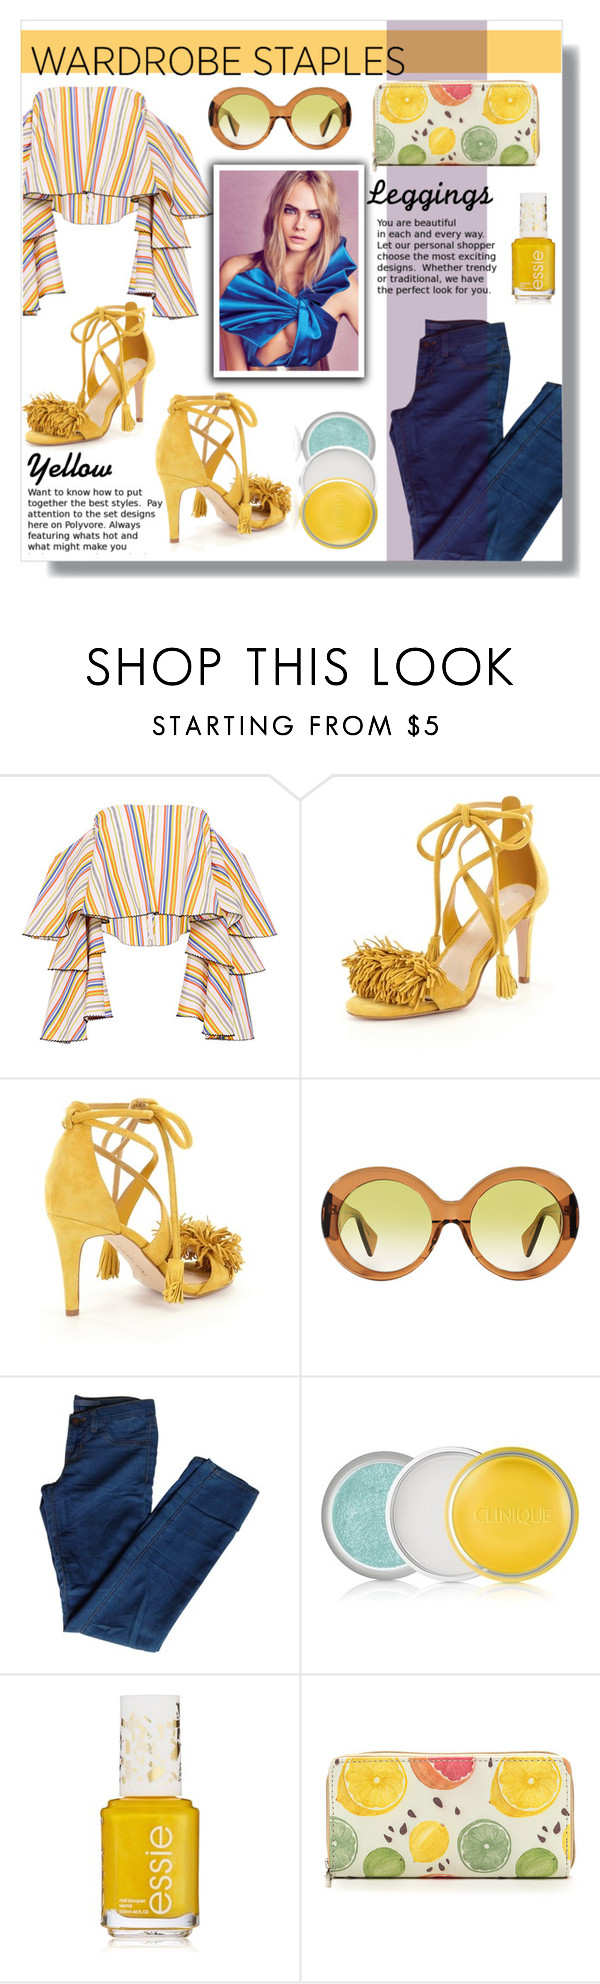 """""""Leggins"""" by steph-soto ❤ liked on Polyvore featuring Caroline Constas, Gianni Bini, Versace, J Brand, Clinique, Leggings and WardrobeStaples"""